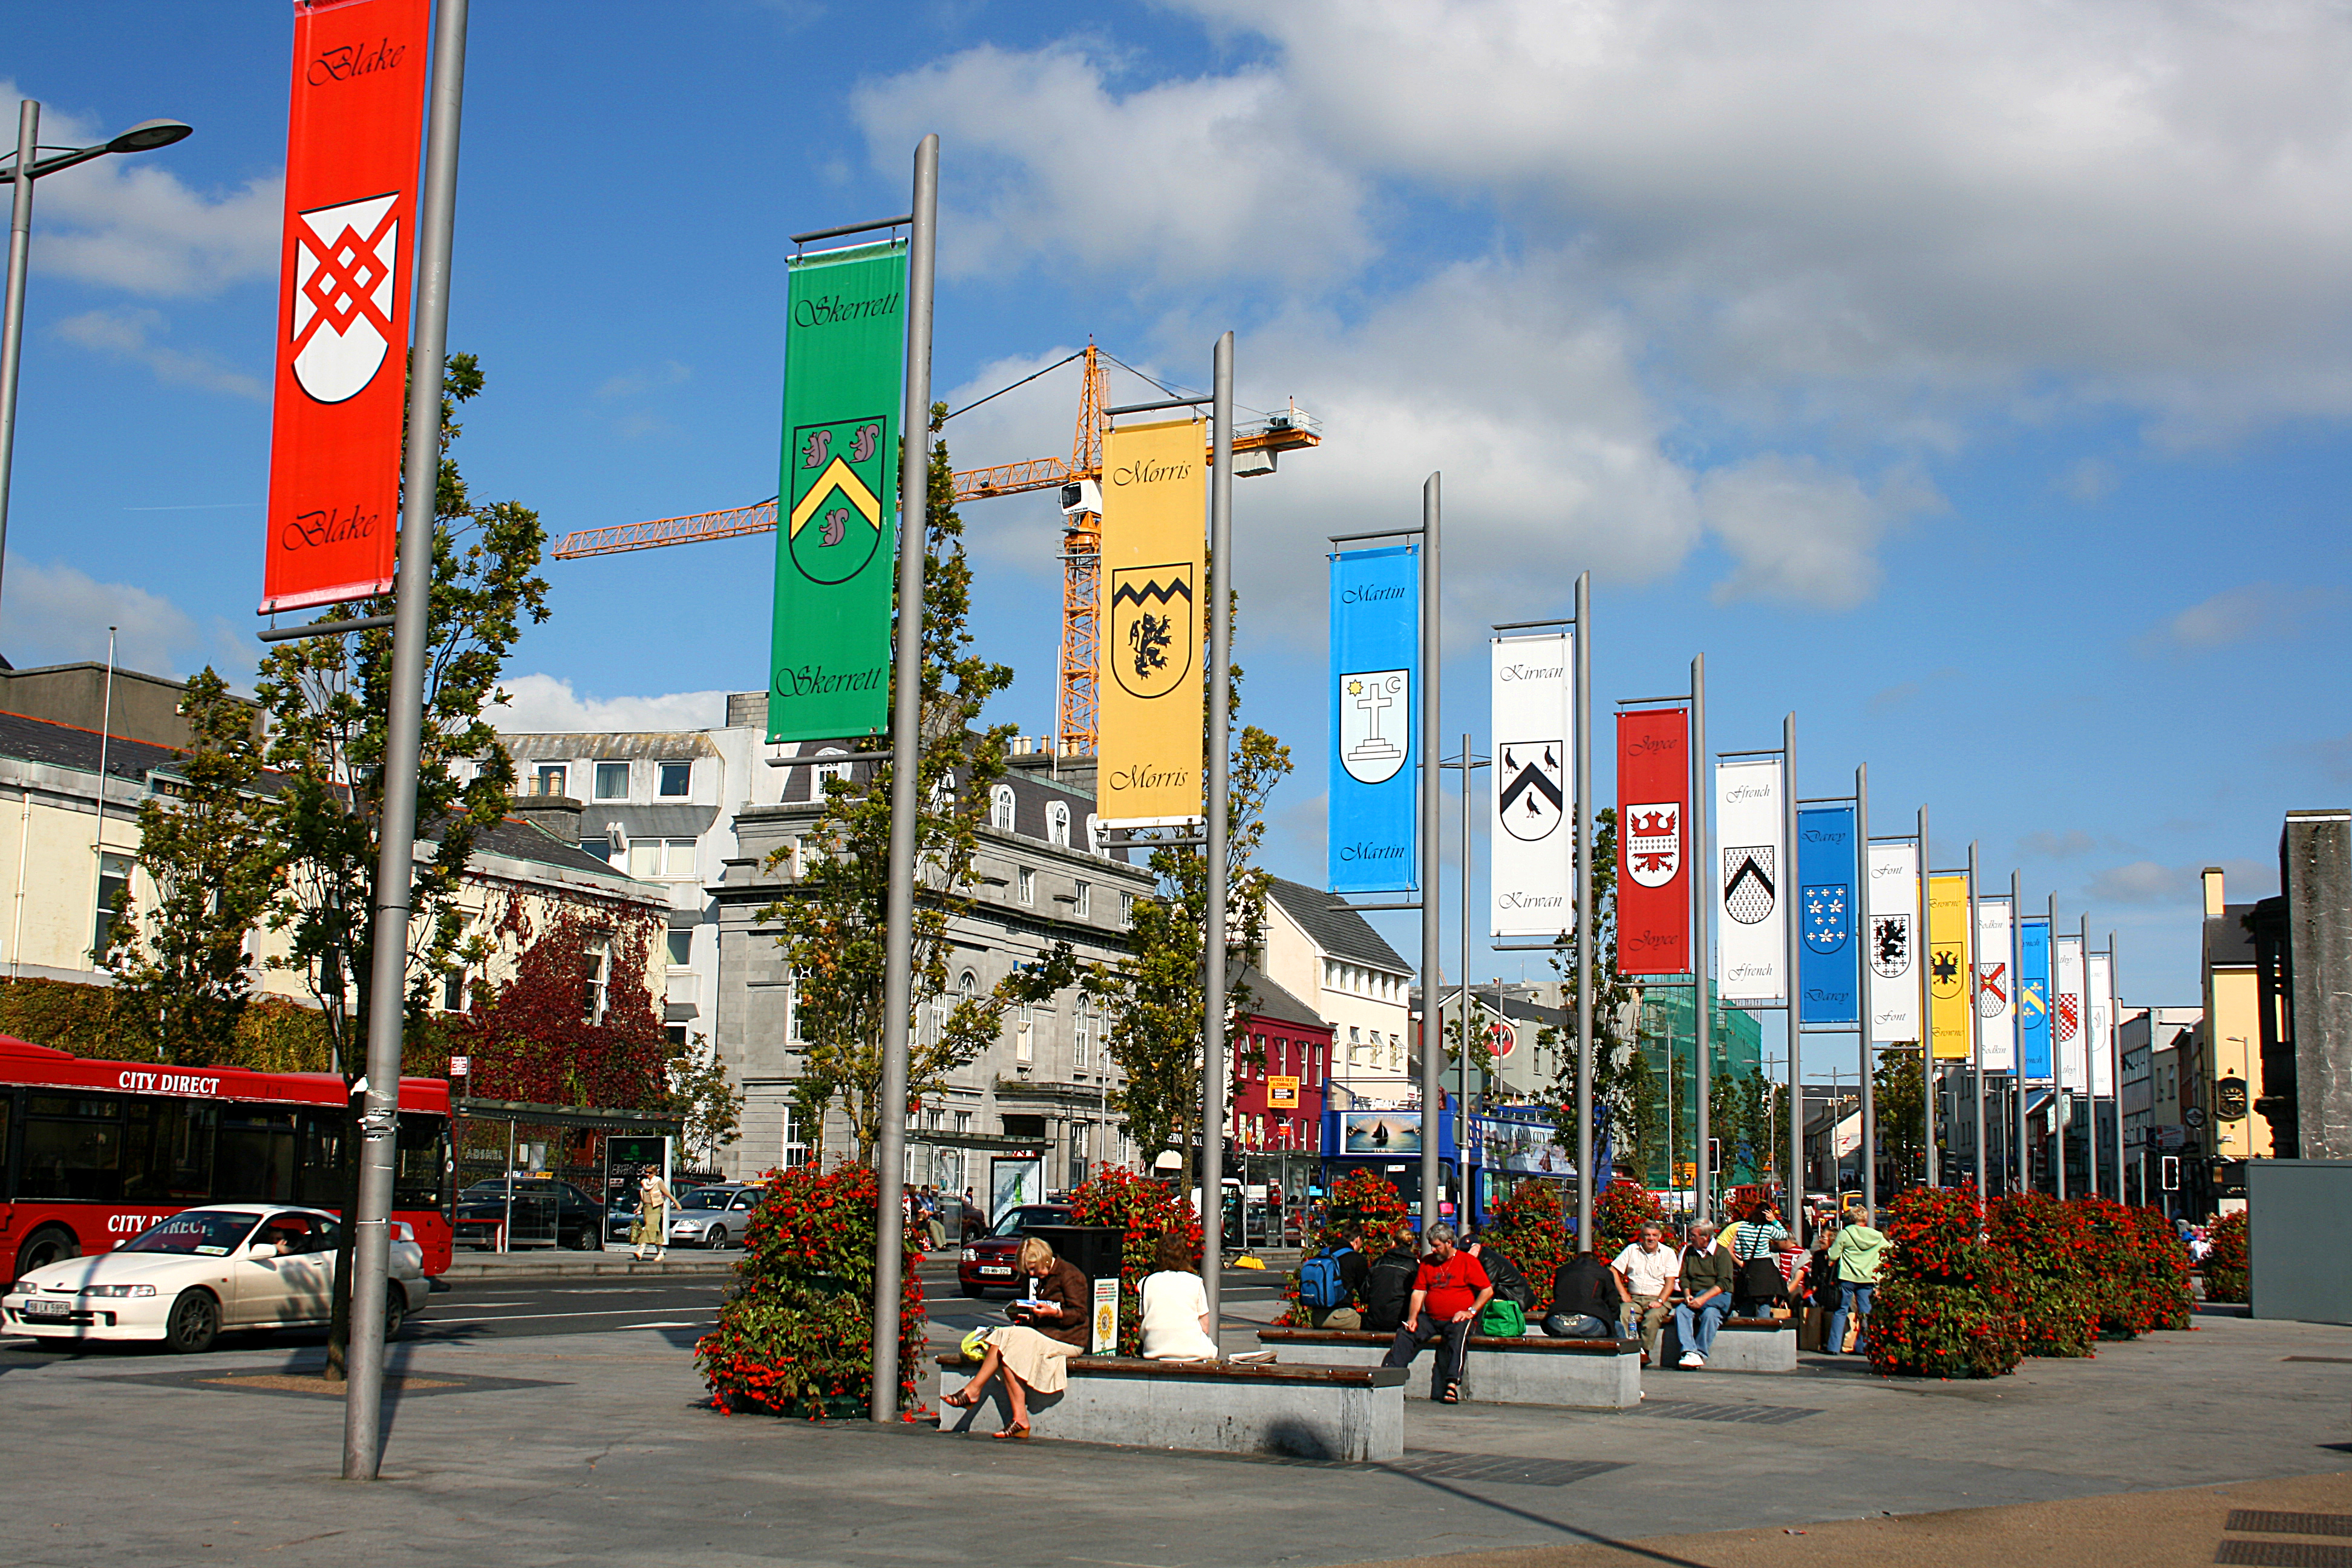 The Tribes of Galway